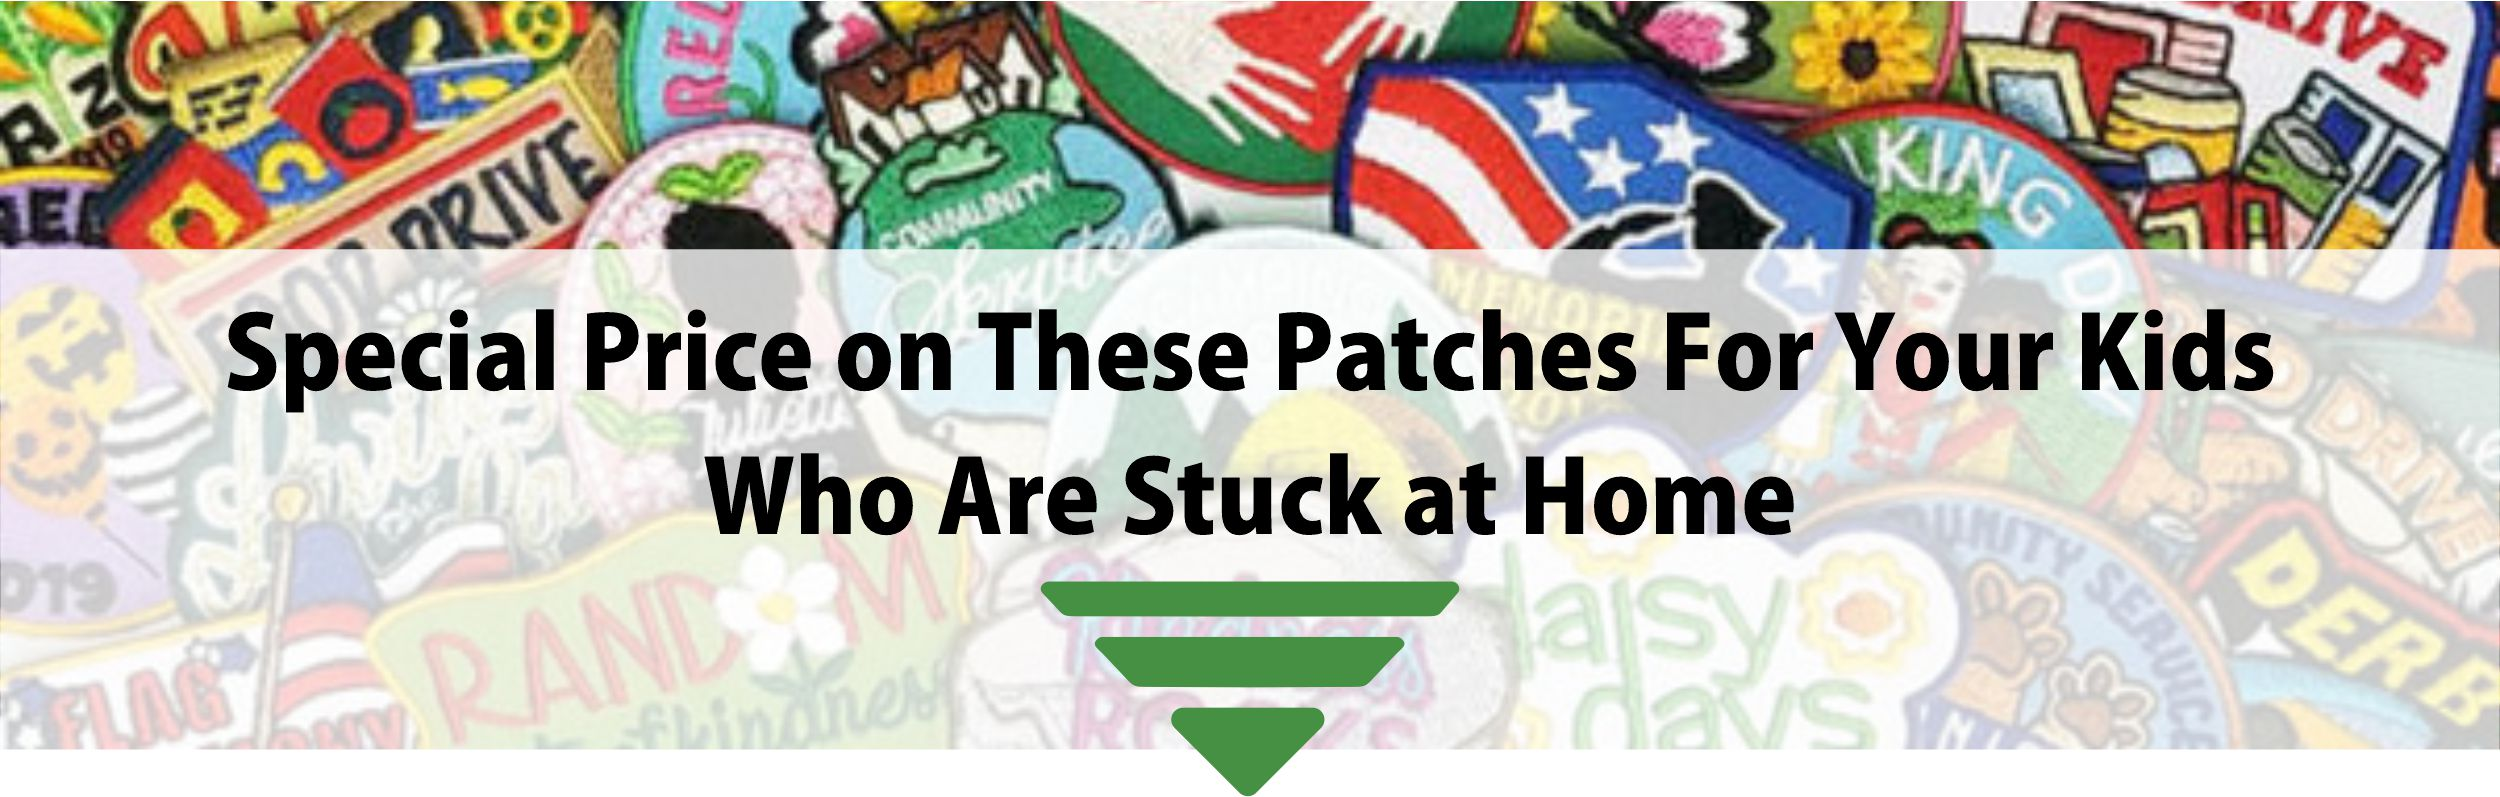 Girl Scout Patches Corona Virus